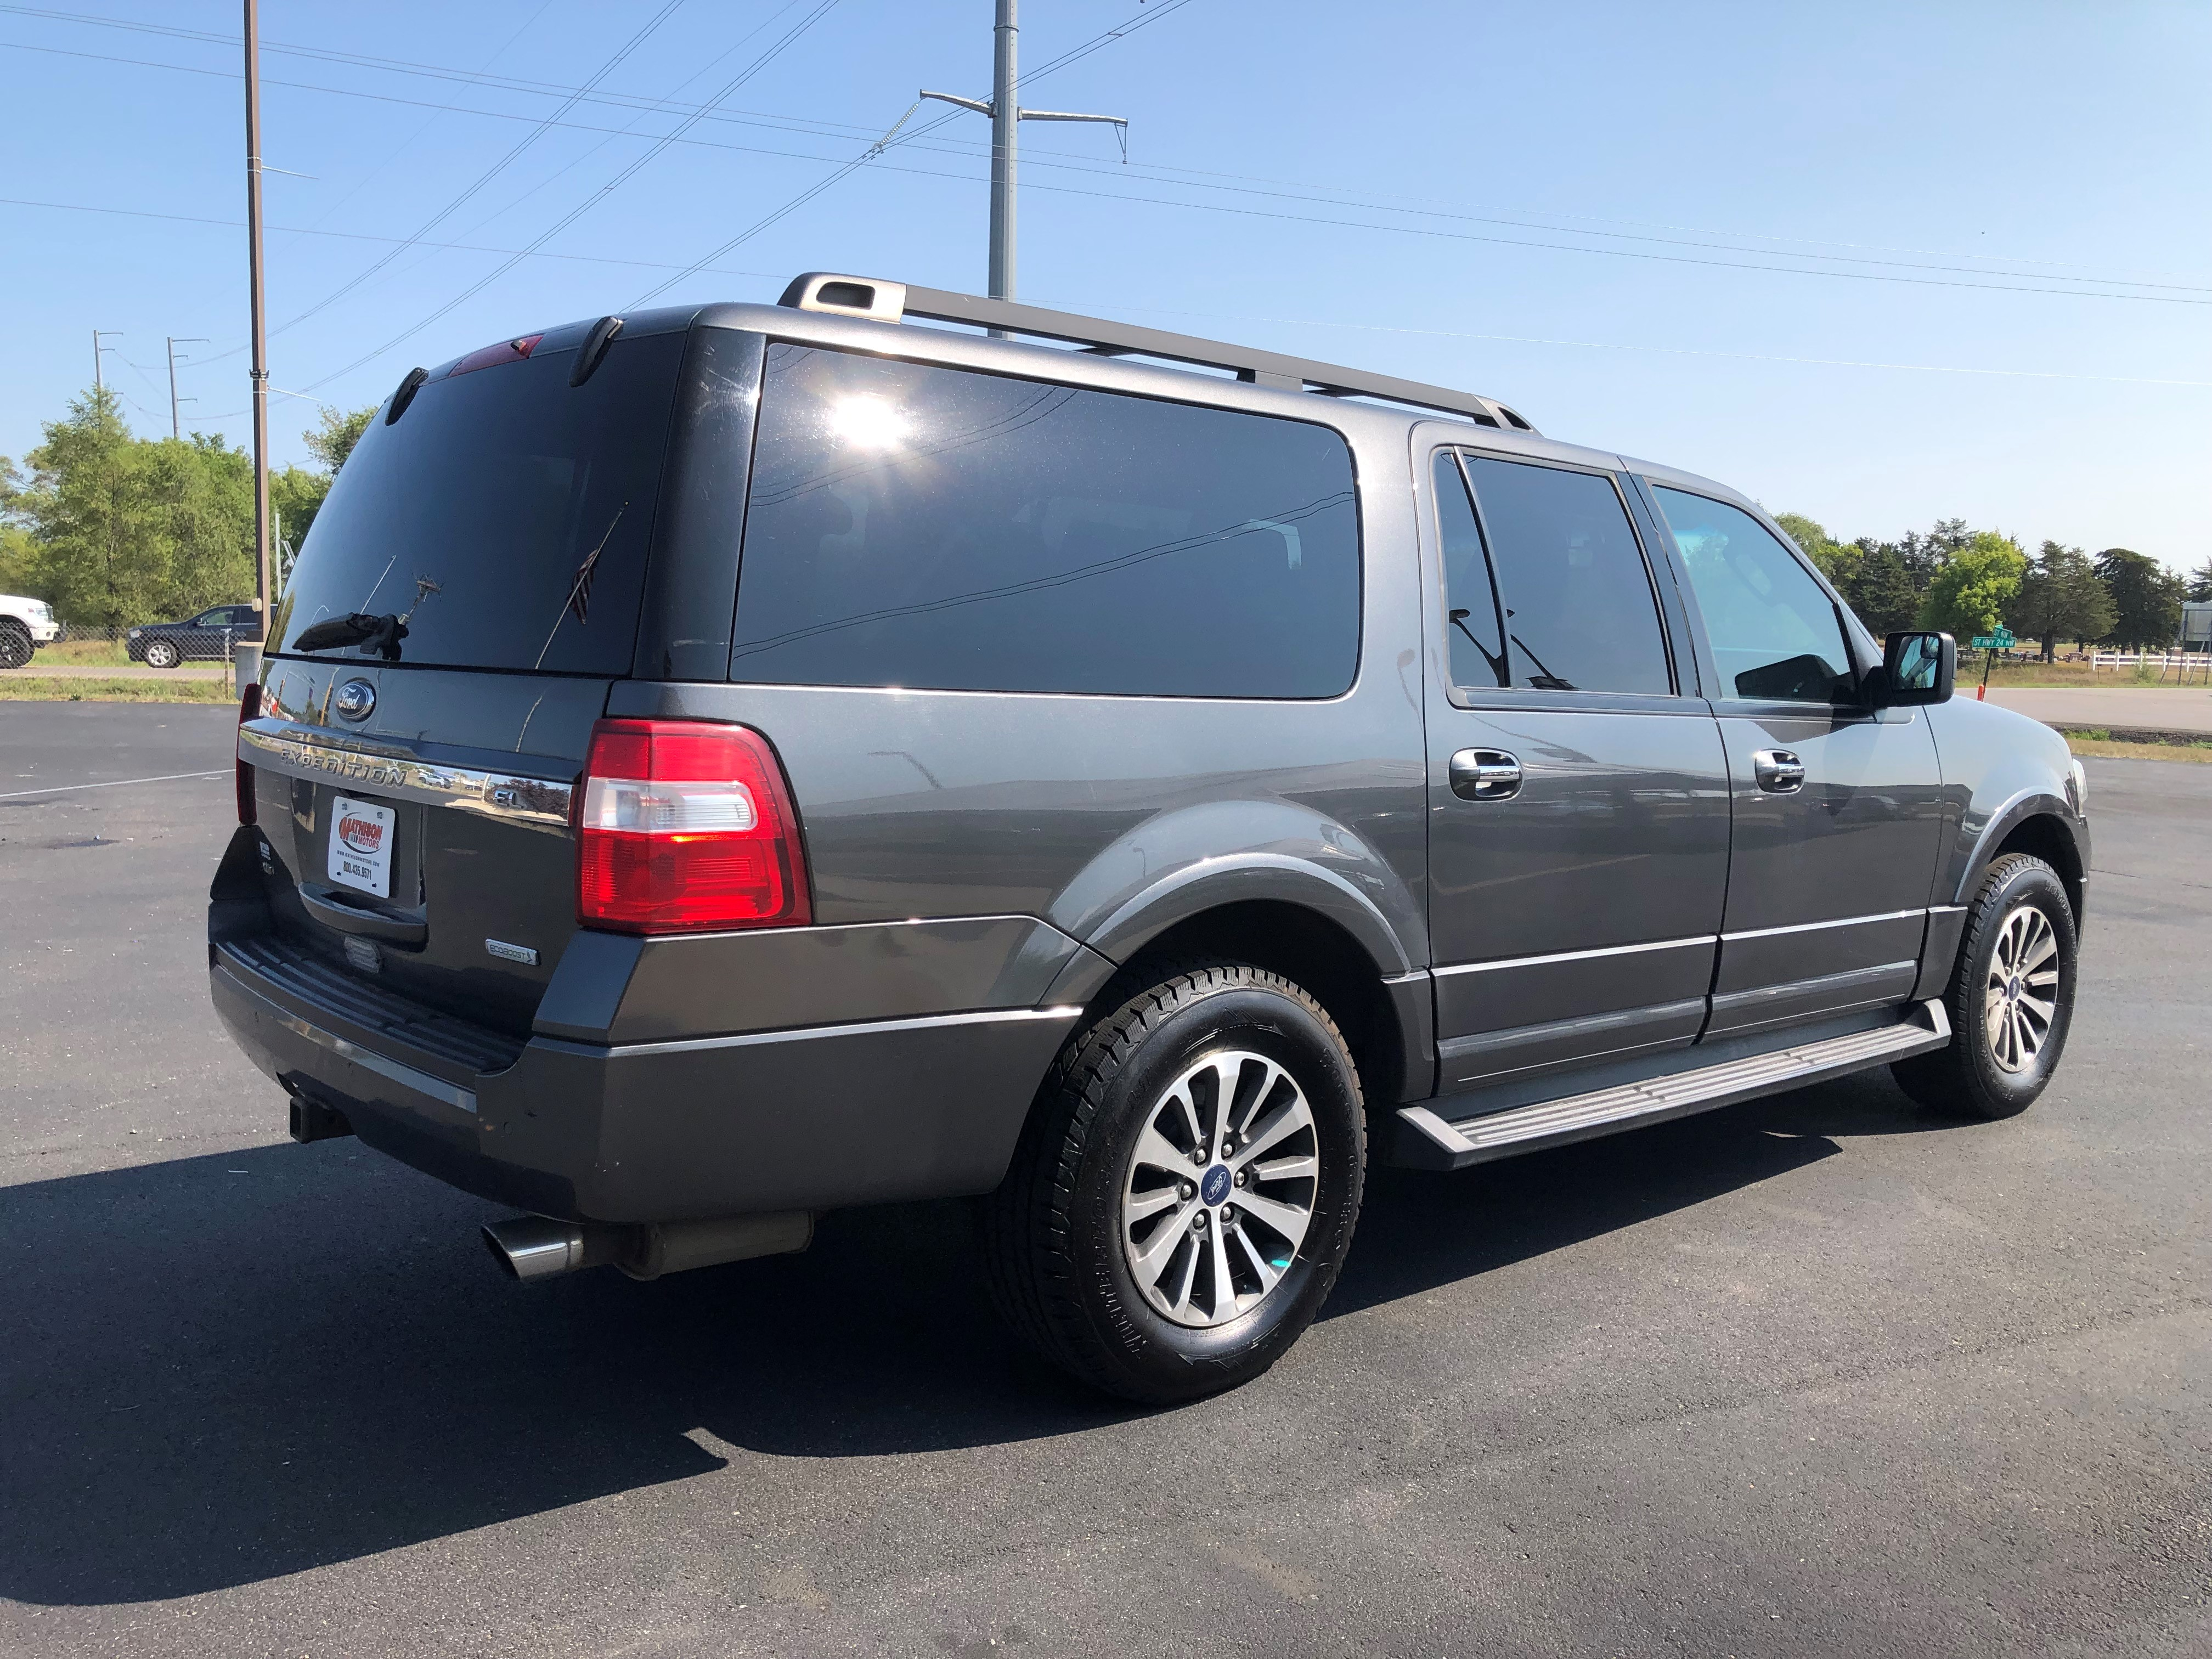 used vehicle - SUV FORD EXPEDITION EL 2015